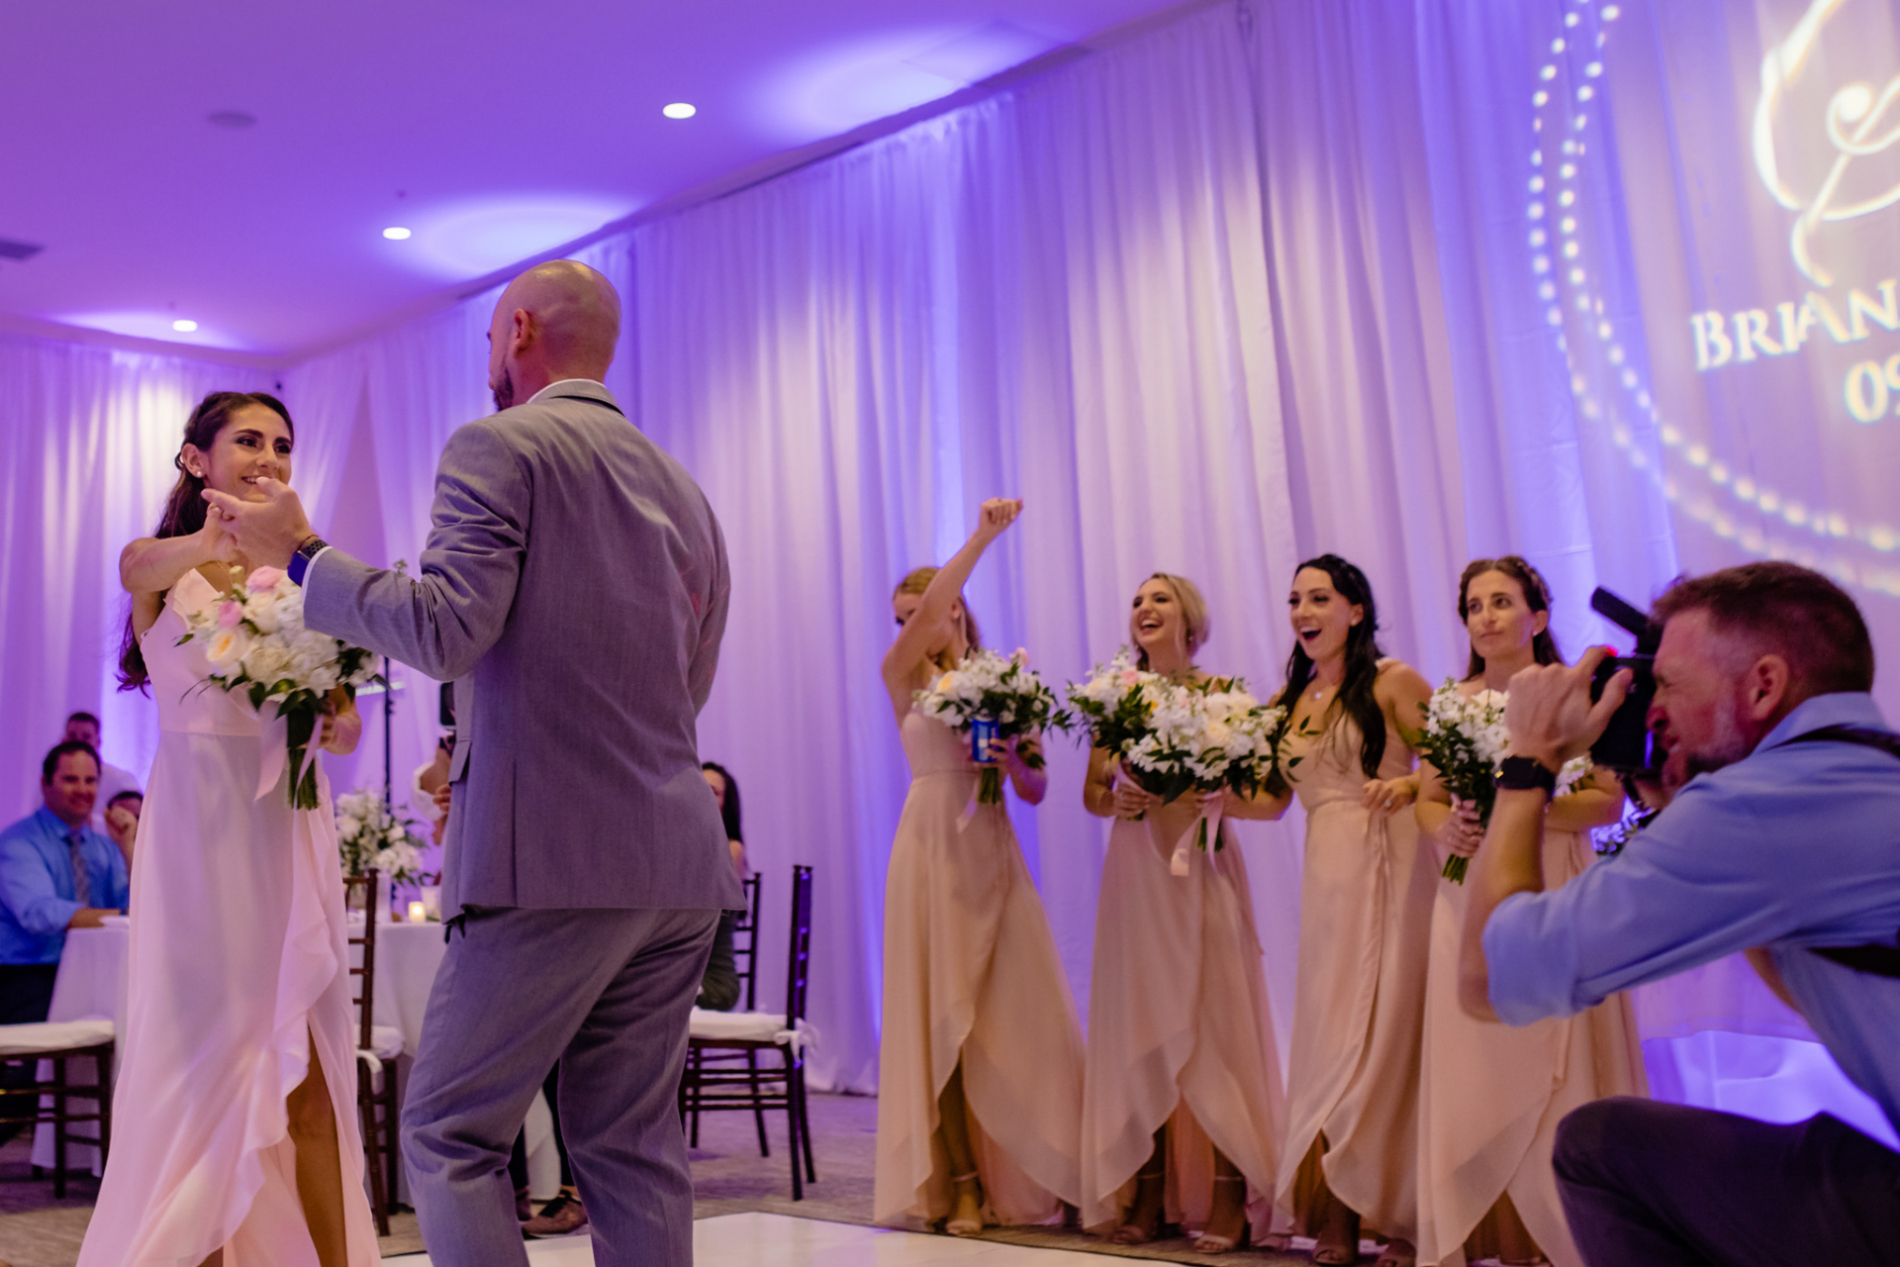 NC wedding photographer Michael Freas at work at an Asheville reception dance floor